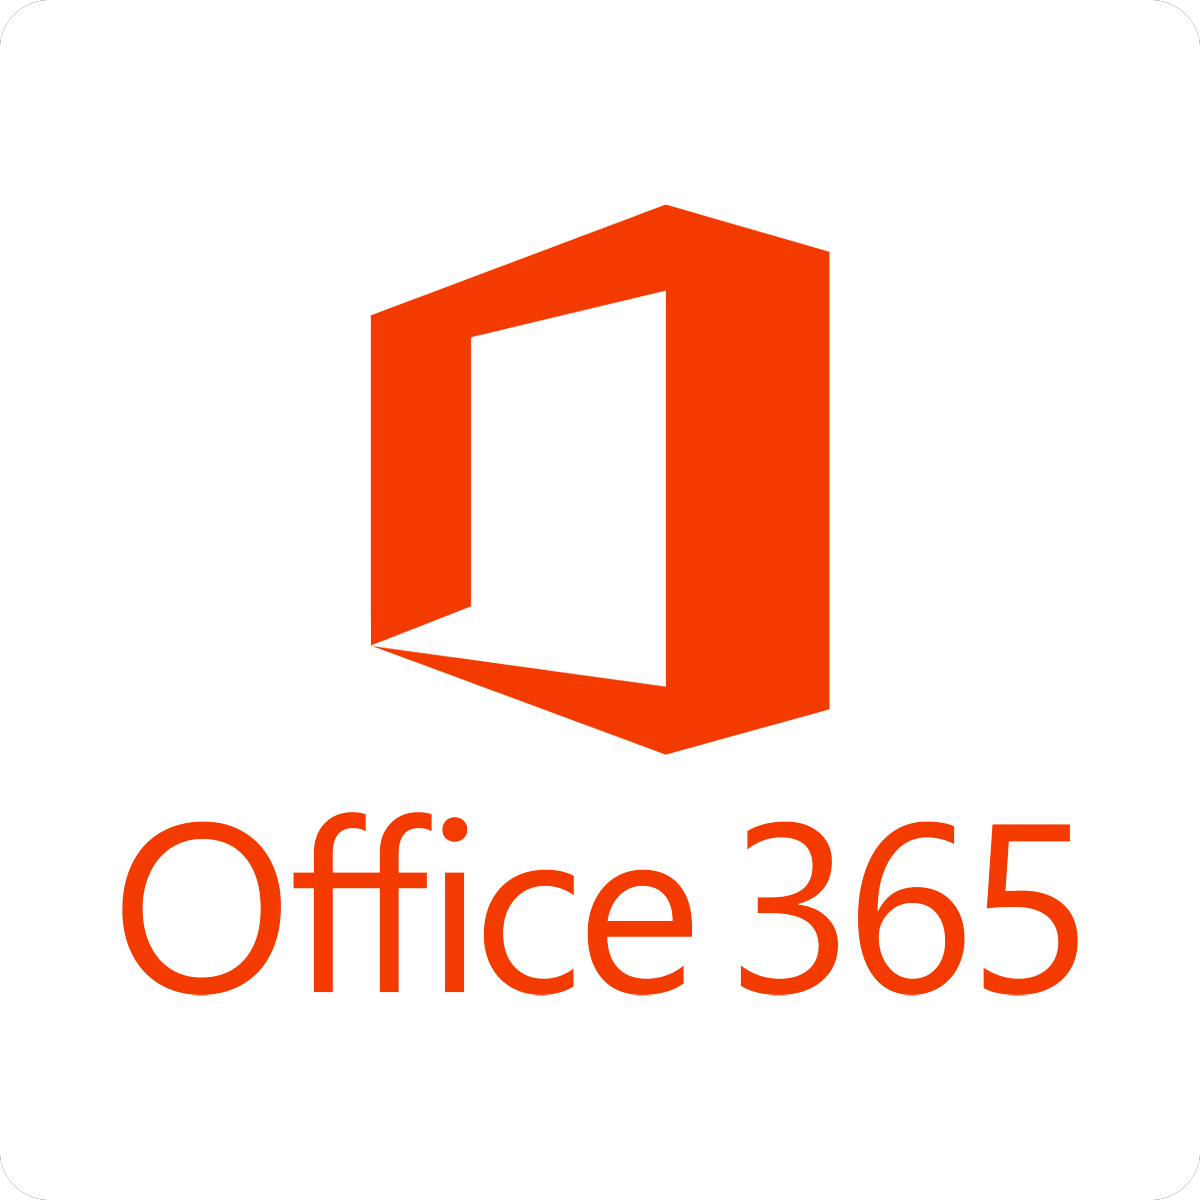 Microsoft Office 365 Crack Product Key + Activator 2020 Full